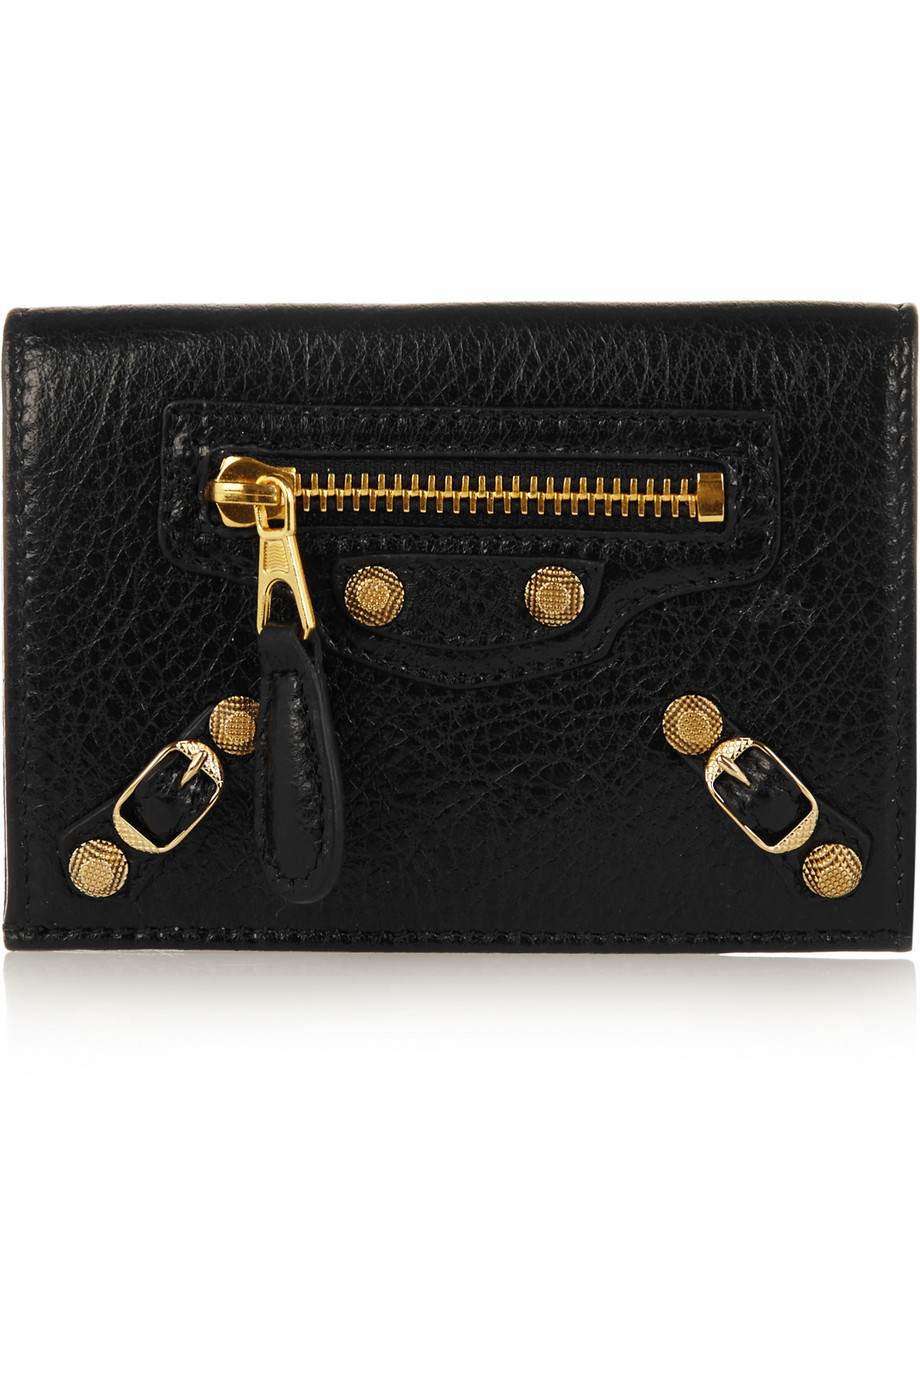 Balenciaga Arena Textured-Leather Wallet, Black, Women's